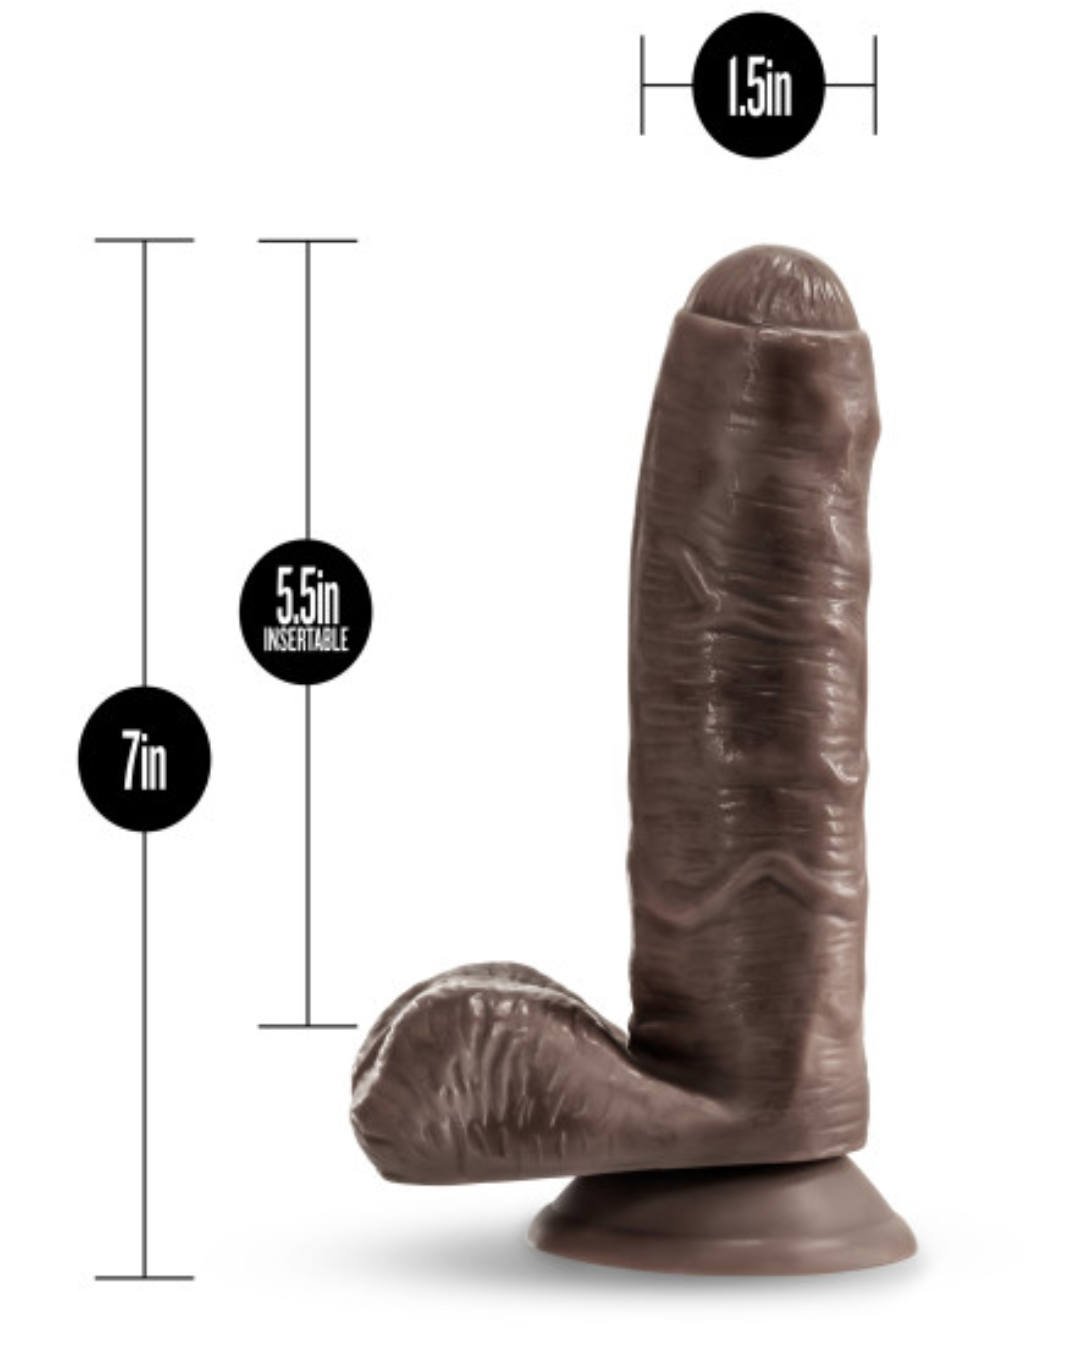 Loverboy Dildos - Pierre the Chef 7 Inch Uncut Dildo by Blush - Chocolate with measurements